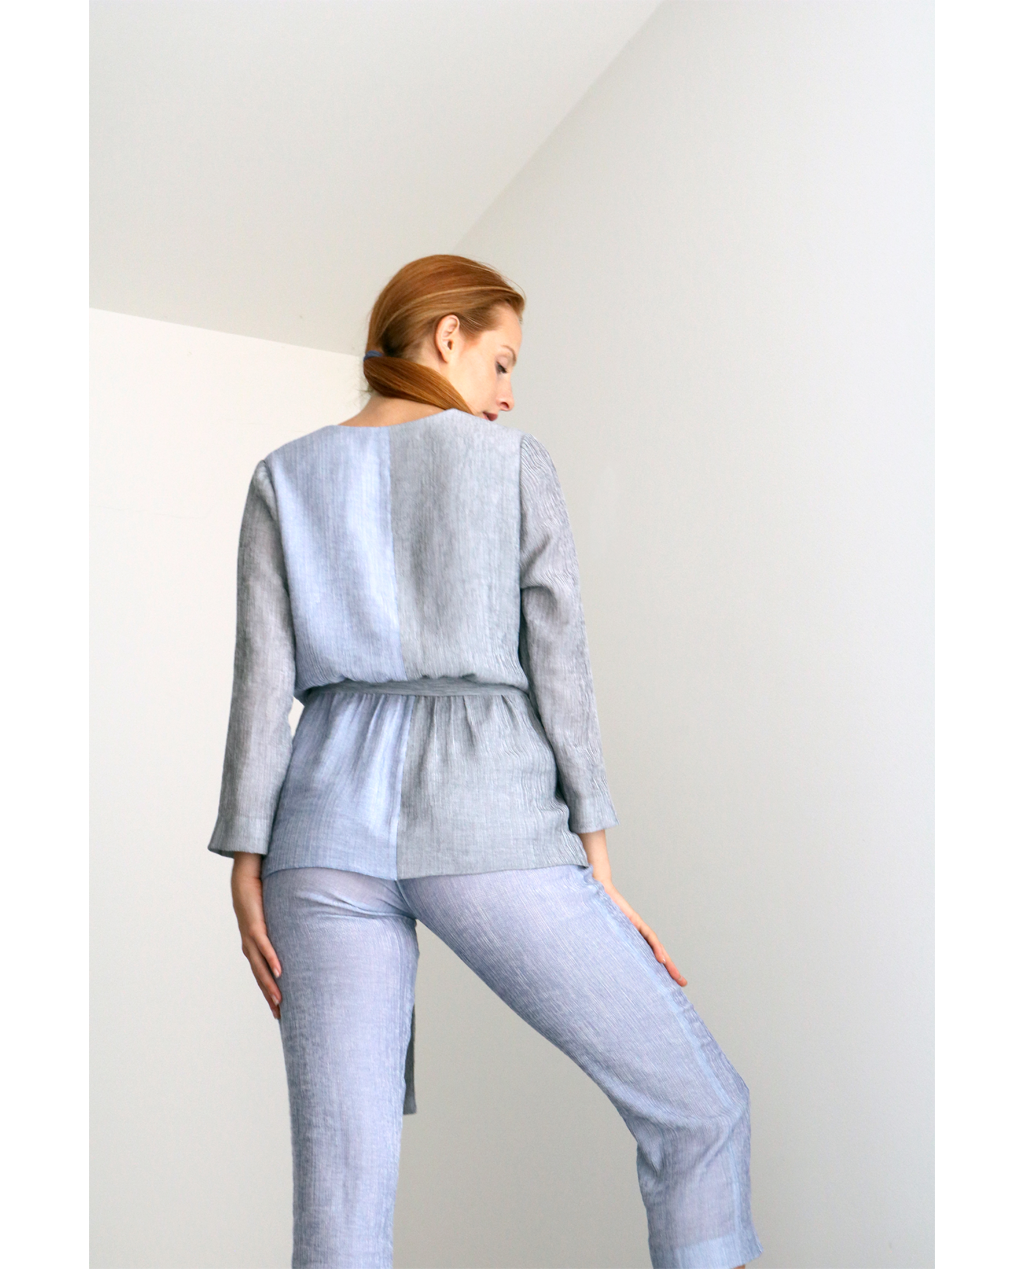 Juno wrap around shirt is perfect top or overcoat in summer weather. Double coloured in light grey and blue featuring gathered waist with gives more adjustment to your body